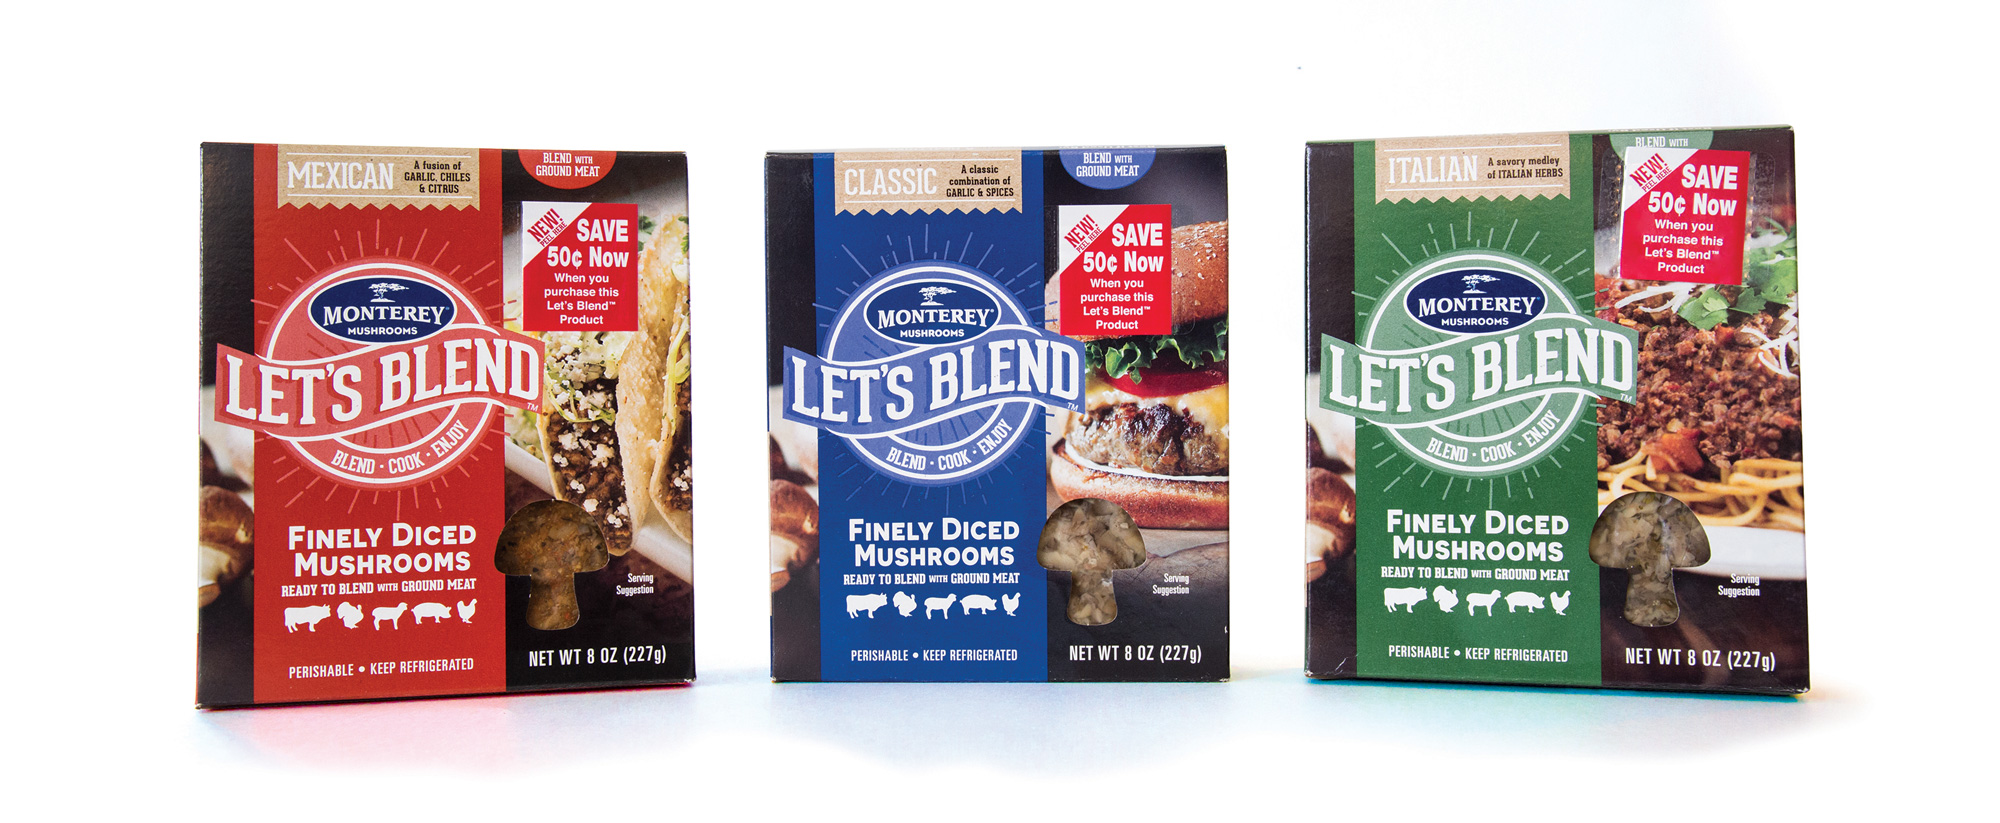 Let's Blend™ is a line of finely diced mushrooms ready-to-blend with ground meat